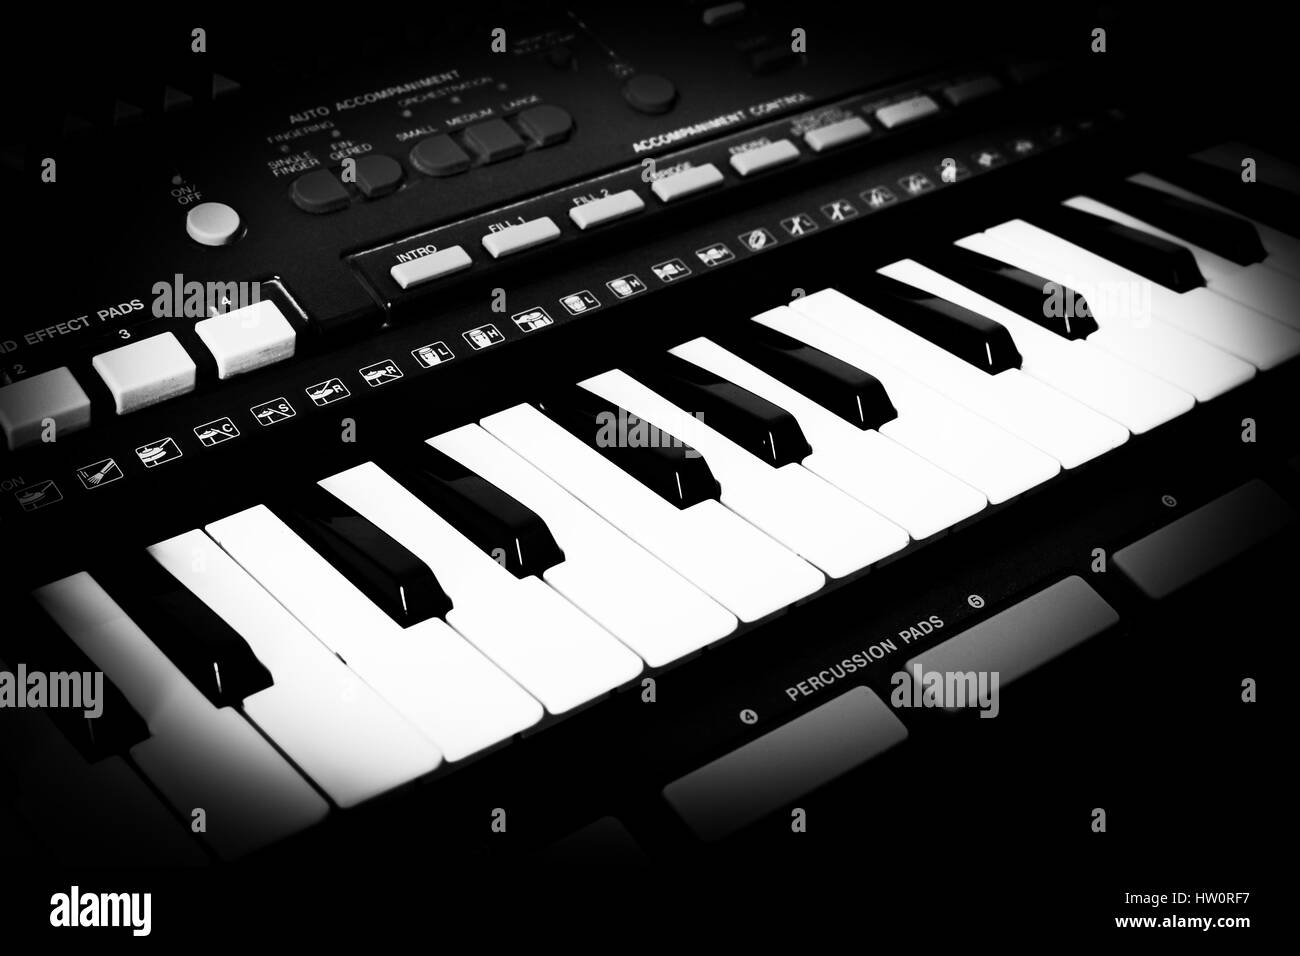 Musical keyboard of an old synthesizer with a monochrome toning - Stock Image